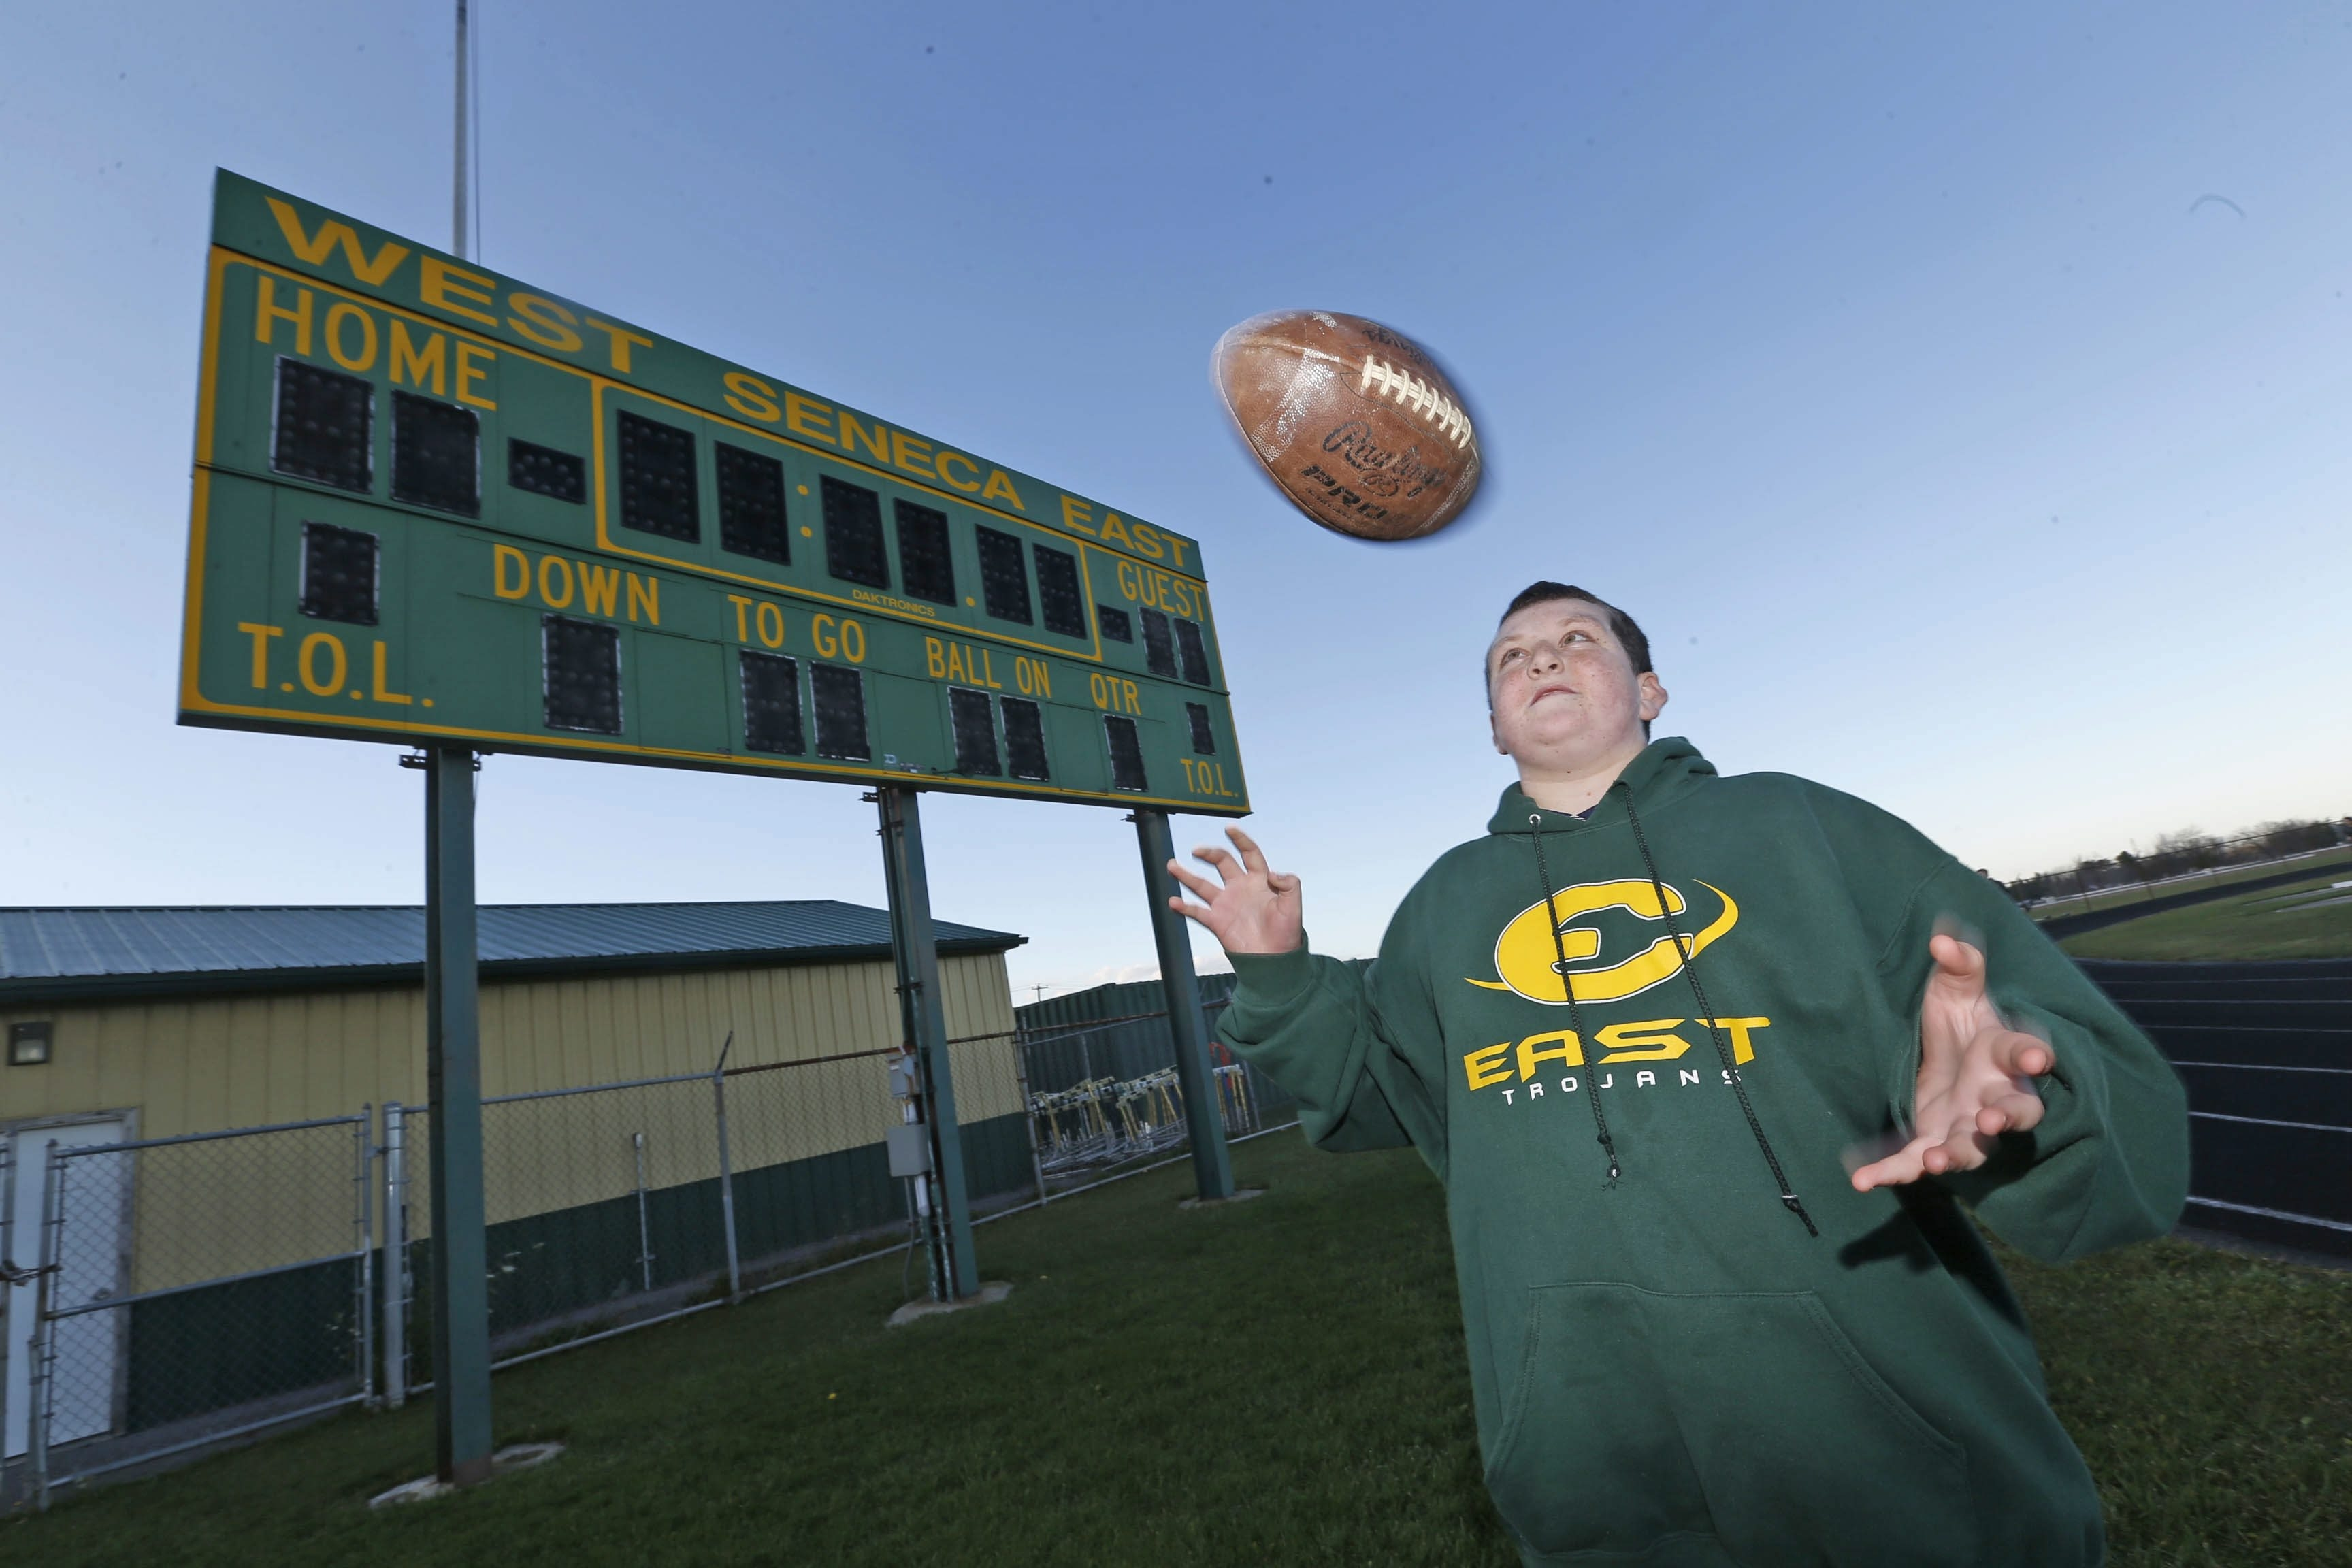 Nick Ramunno, 13, near the scoreboard at West Seneca East High School's athletic field that he got to light up with his touchdown.